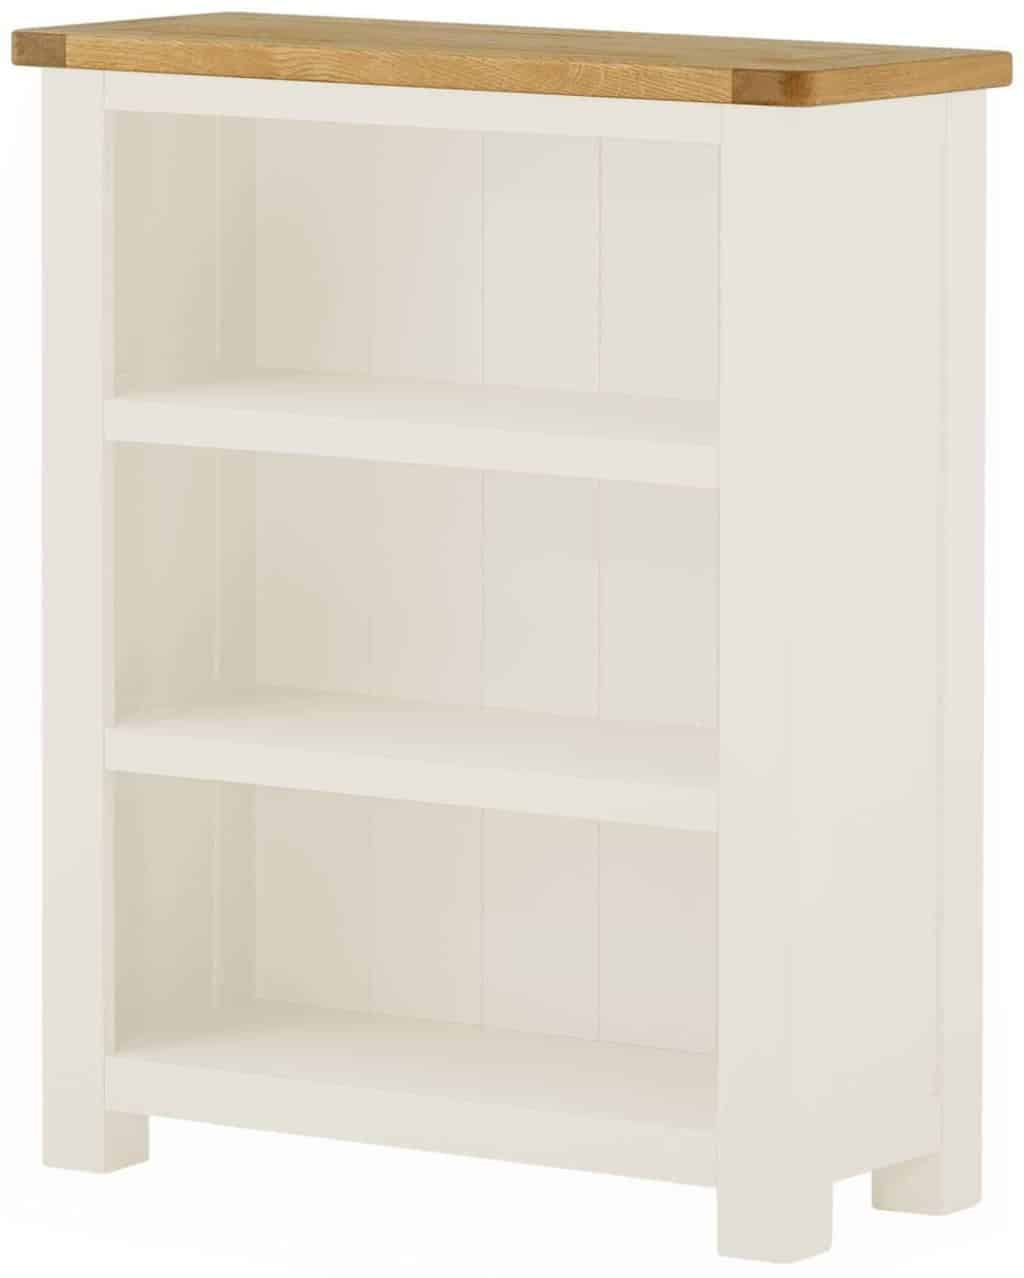 Solid Oak White Painted Small Narrow Open Bookcase Display Wickford Range